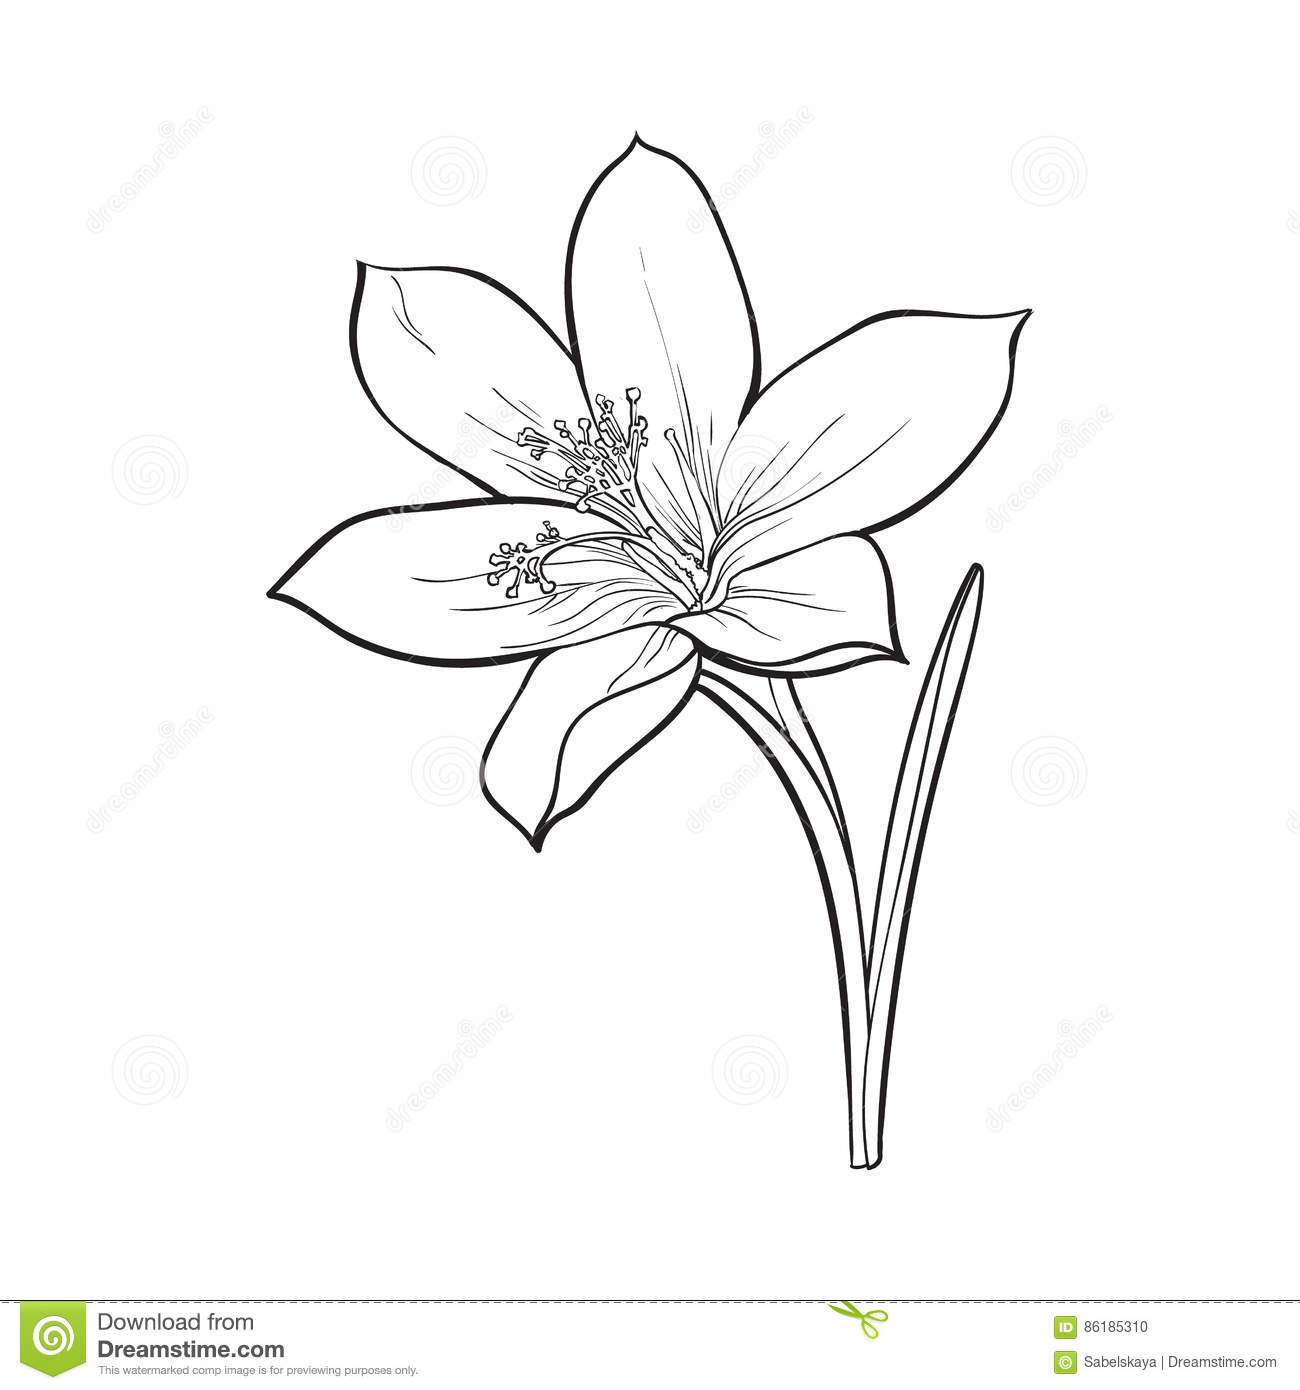 Line Drawing Spring Flowers : Delicate single crocus spring flower with stem and leaf